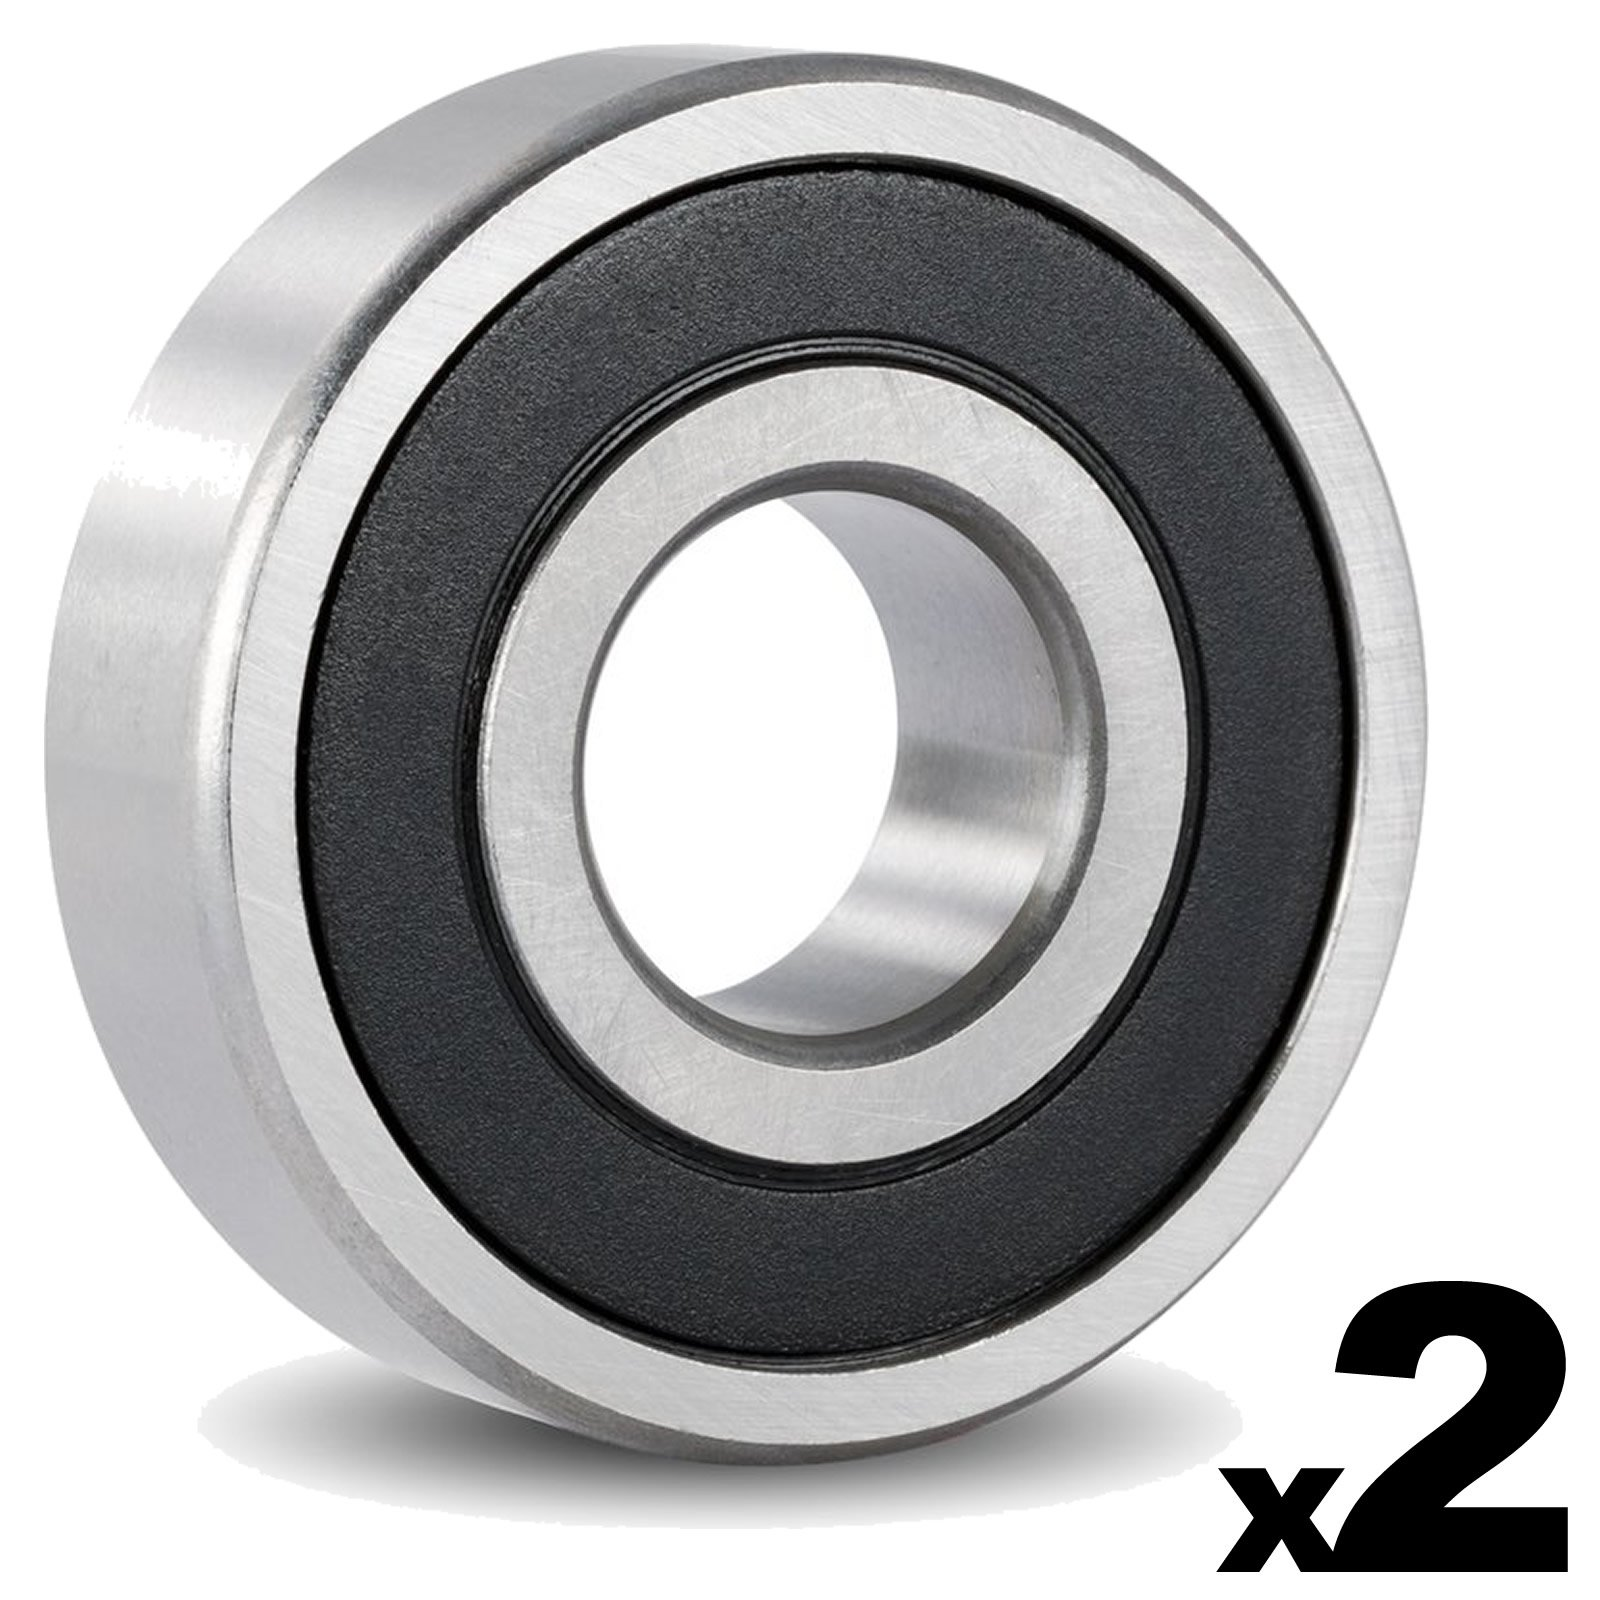 6302-2RS Sealed Bearing - 15x42x13 - Lubricated - Chrome Steel (2 PCS)